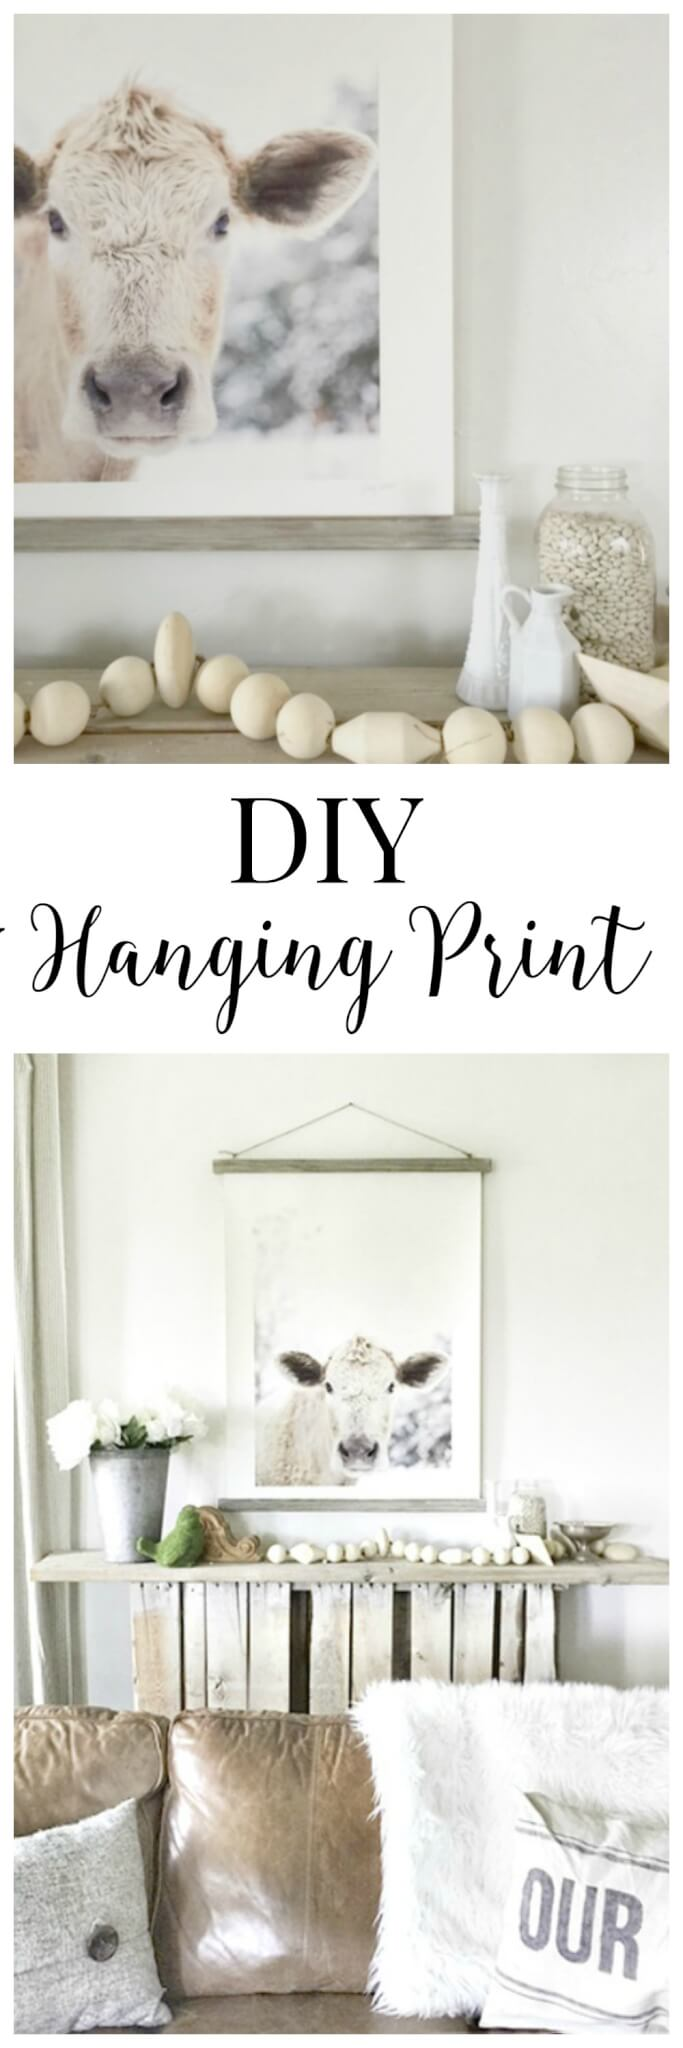 This DIY hanging print with a barnwood finish is so great. This print is so beautiful.